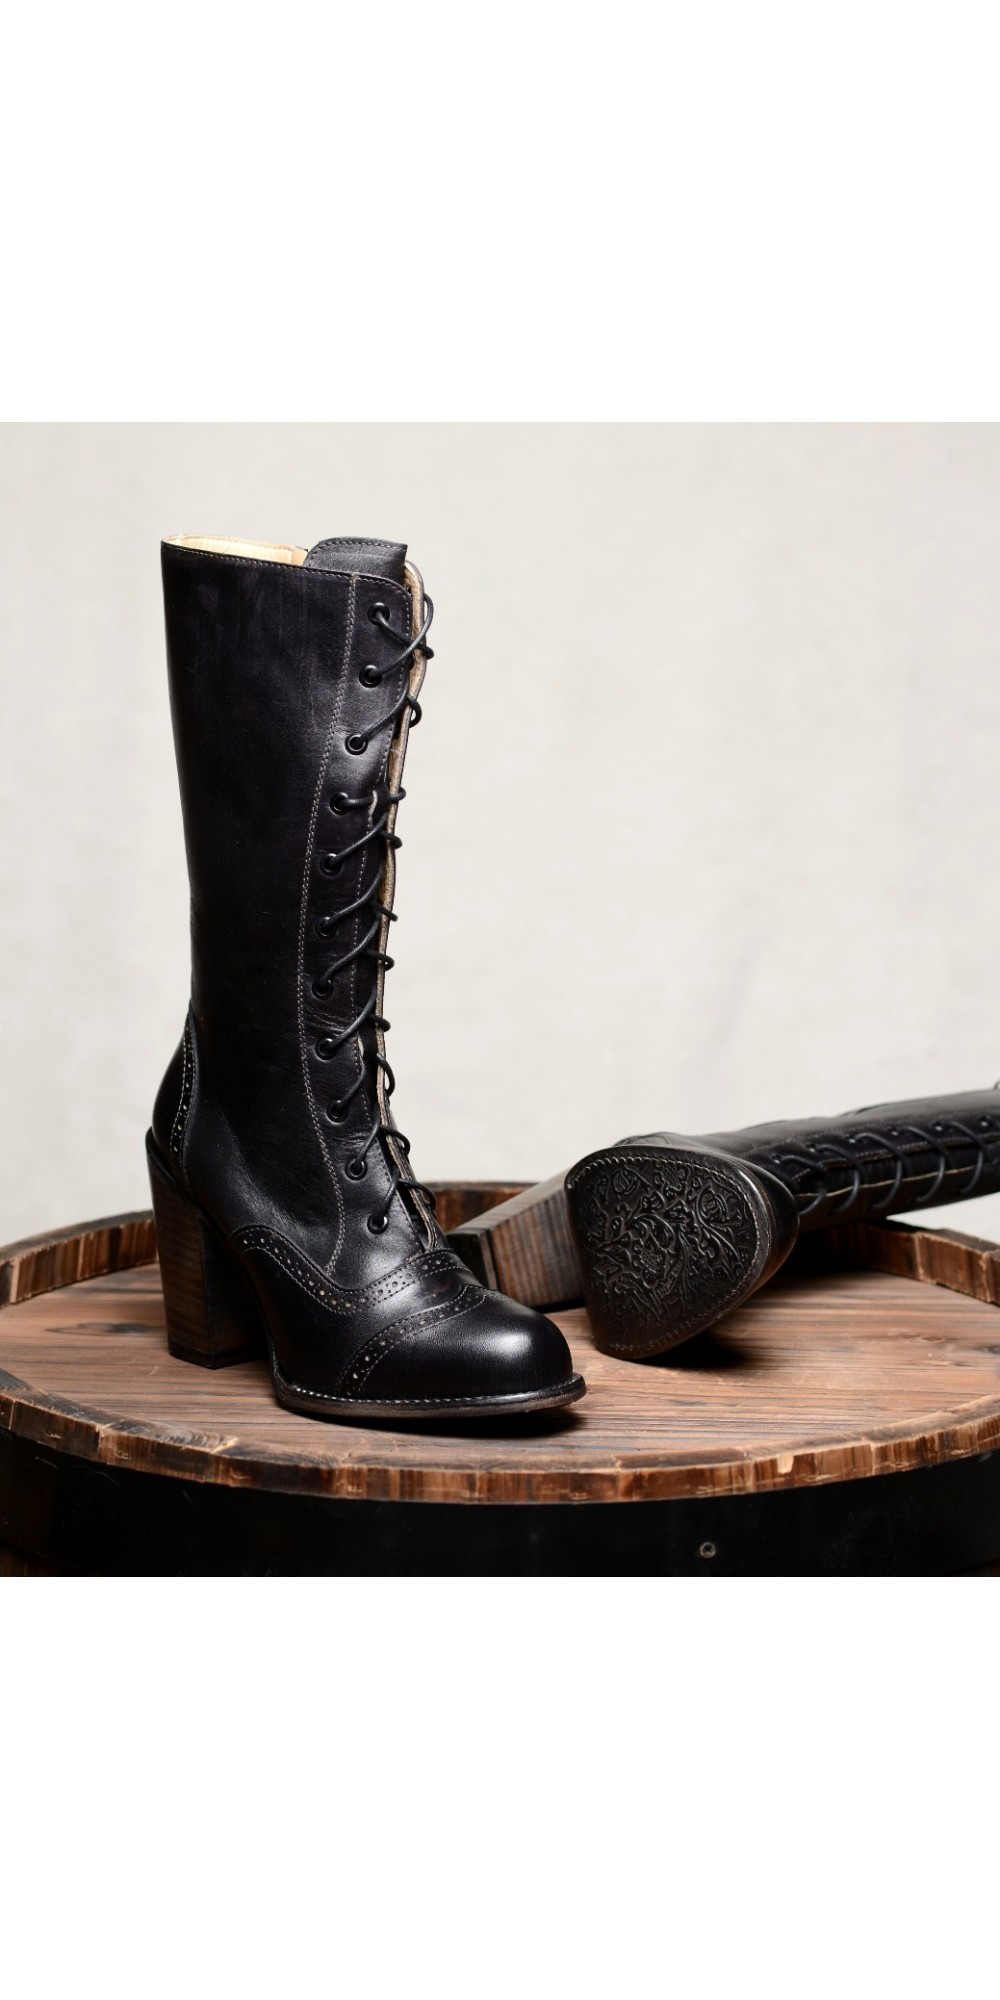 Ariana Victorian Inspired Mid Calf Leather Boots In Black